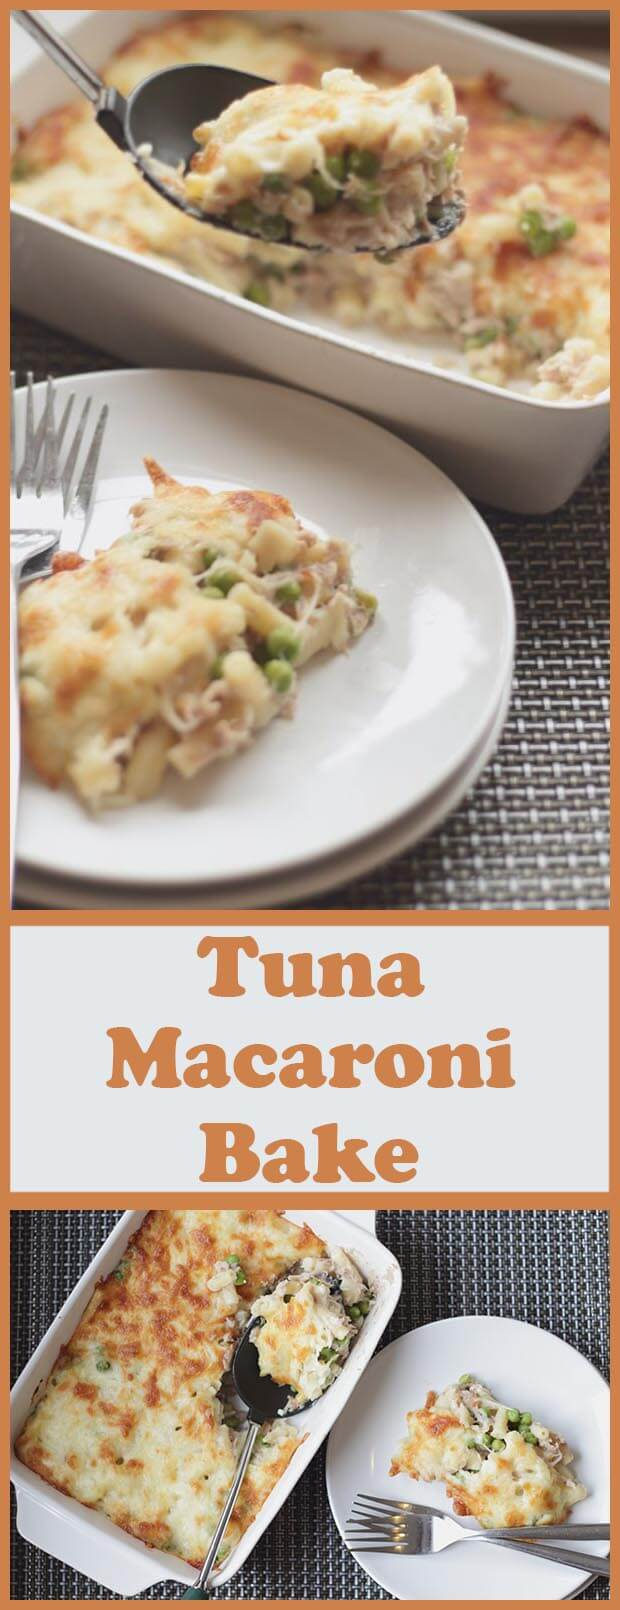 Tuna macaroni bake. This is a simple, tasty, low cost, relatively healthy family dish for four, and one that definitely fits into the favourite category of low cost, quick healthy meals!